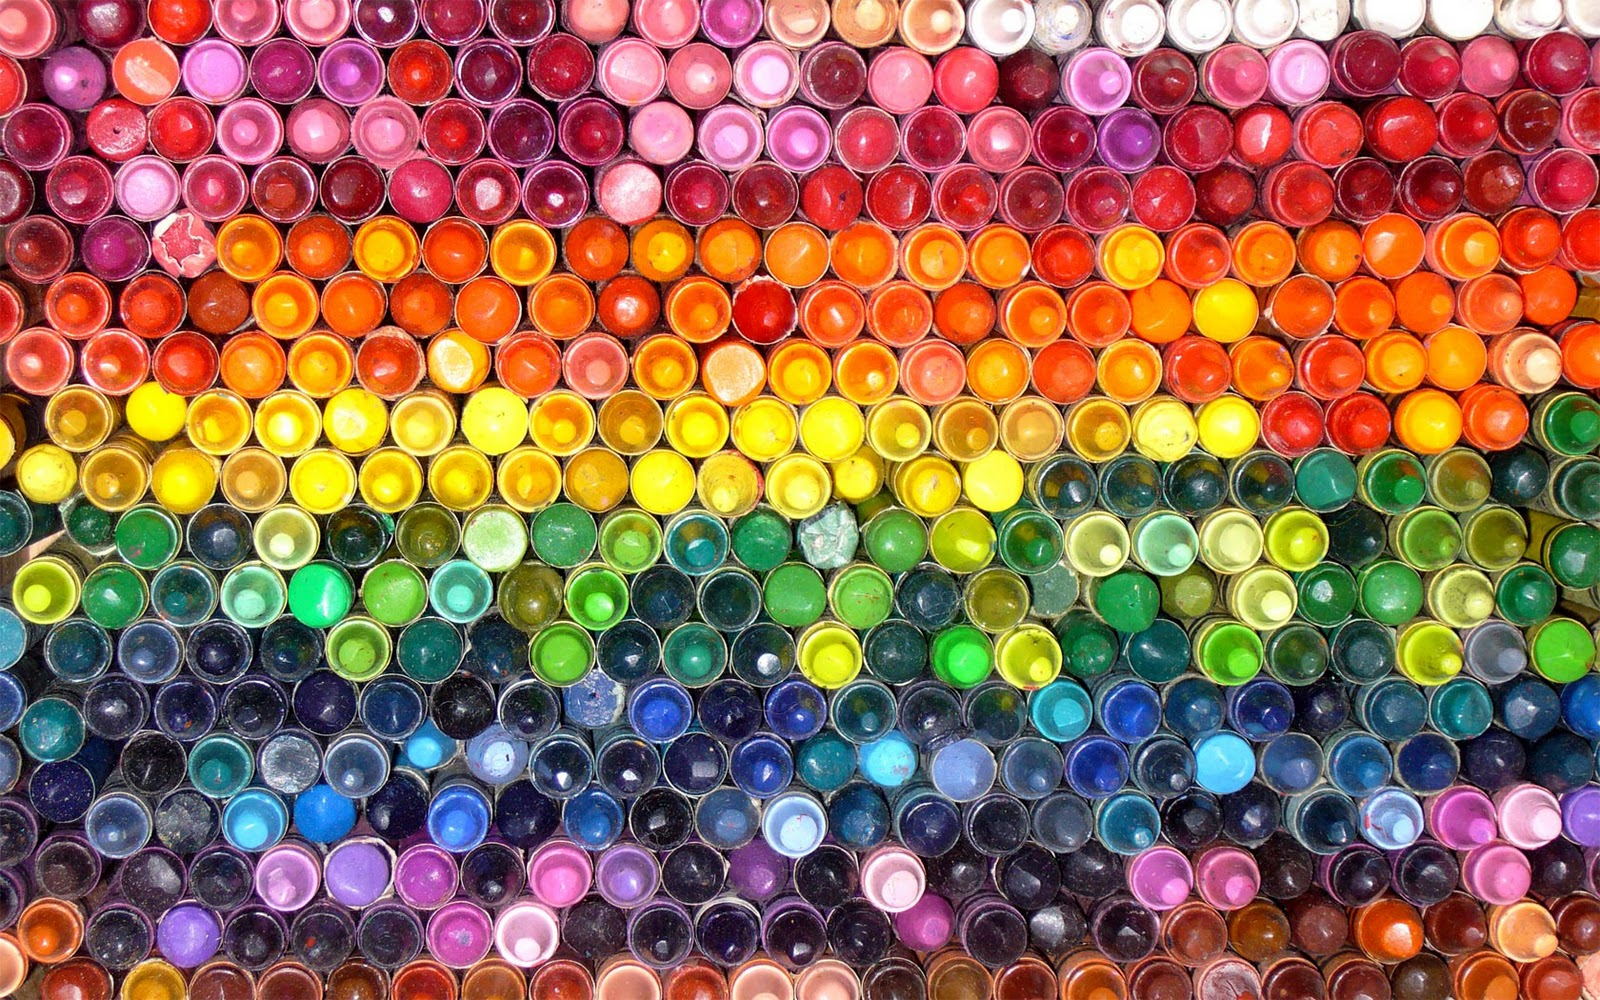 Hd Colorful Backgrounds: Hd Colorful Wallpapers